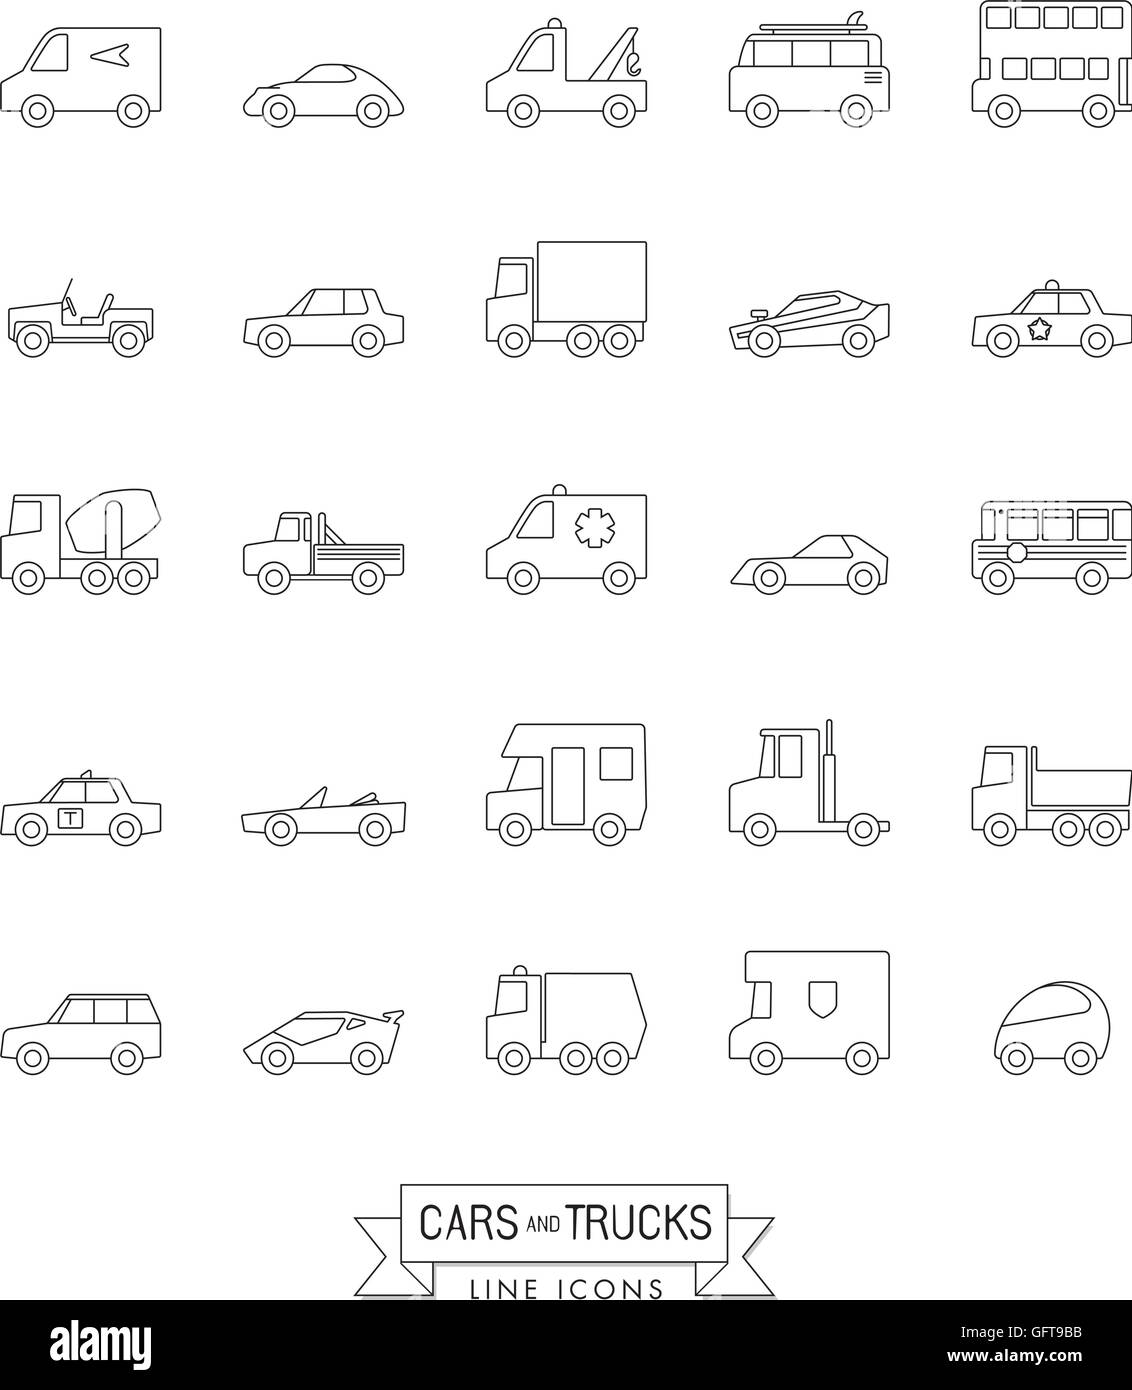 Cars, vans and other motor vehicles line icon set Stock Vector